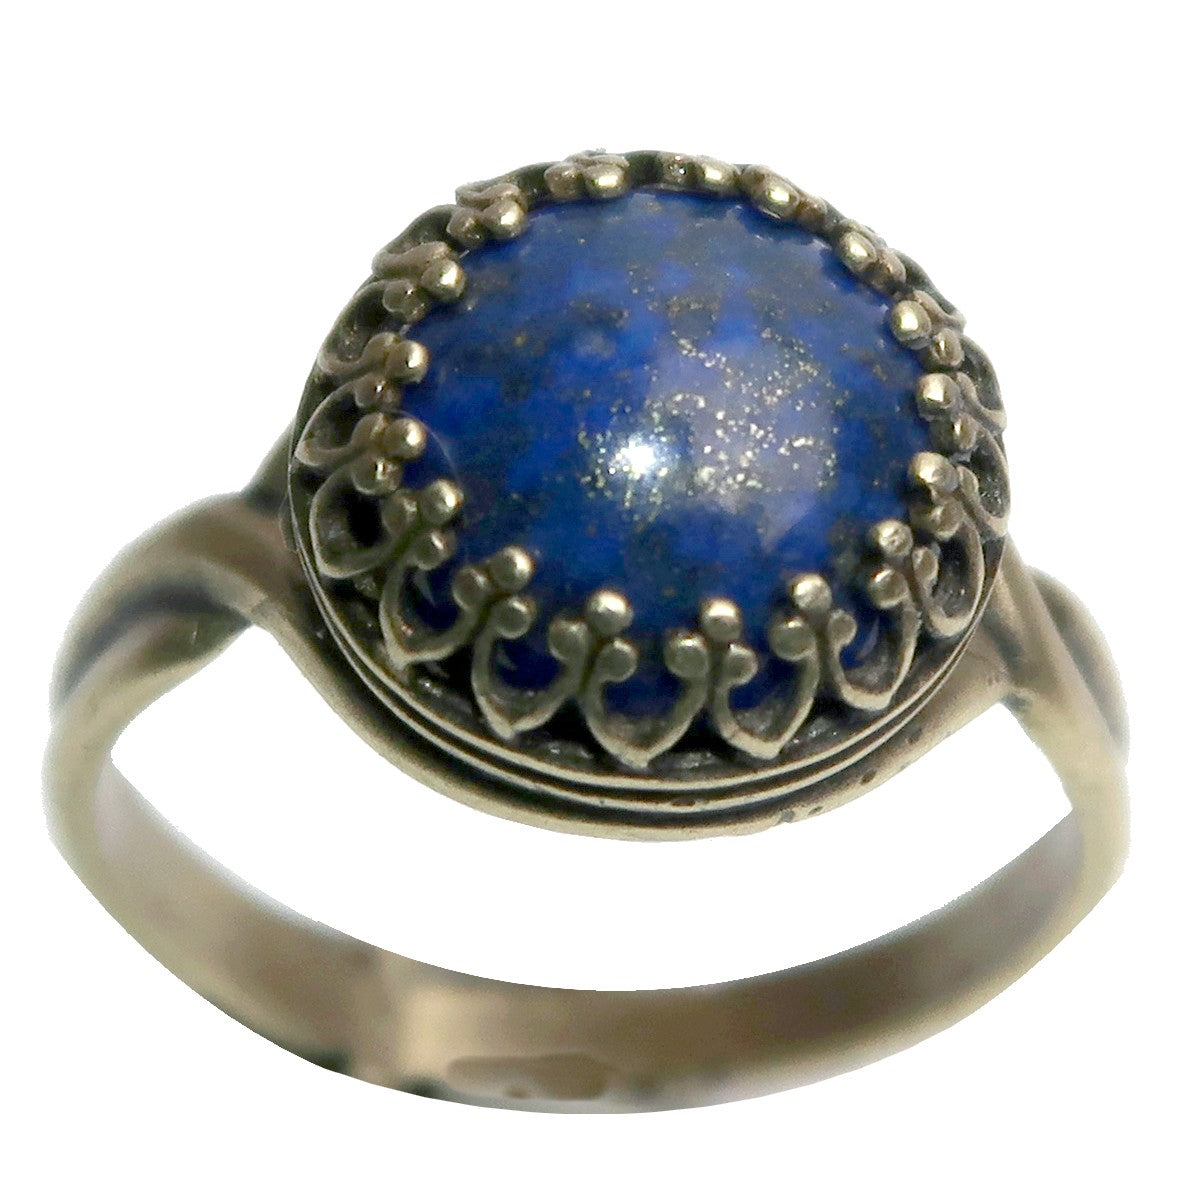 Lapis Ring 6-8 Boutique Blue Round Deluxe Gemstone Pyrite Adjustable B01 (Antiqued Gold)